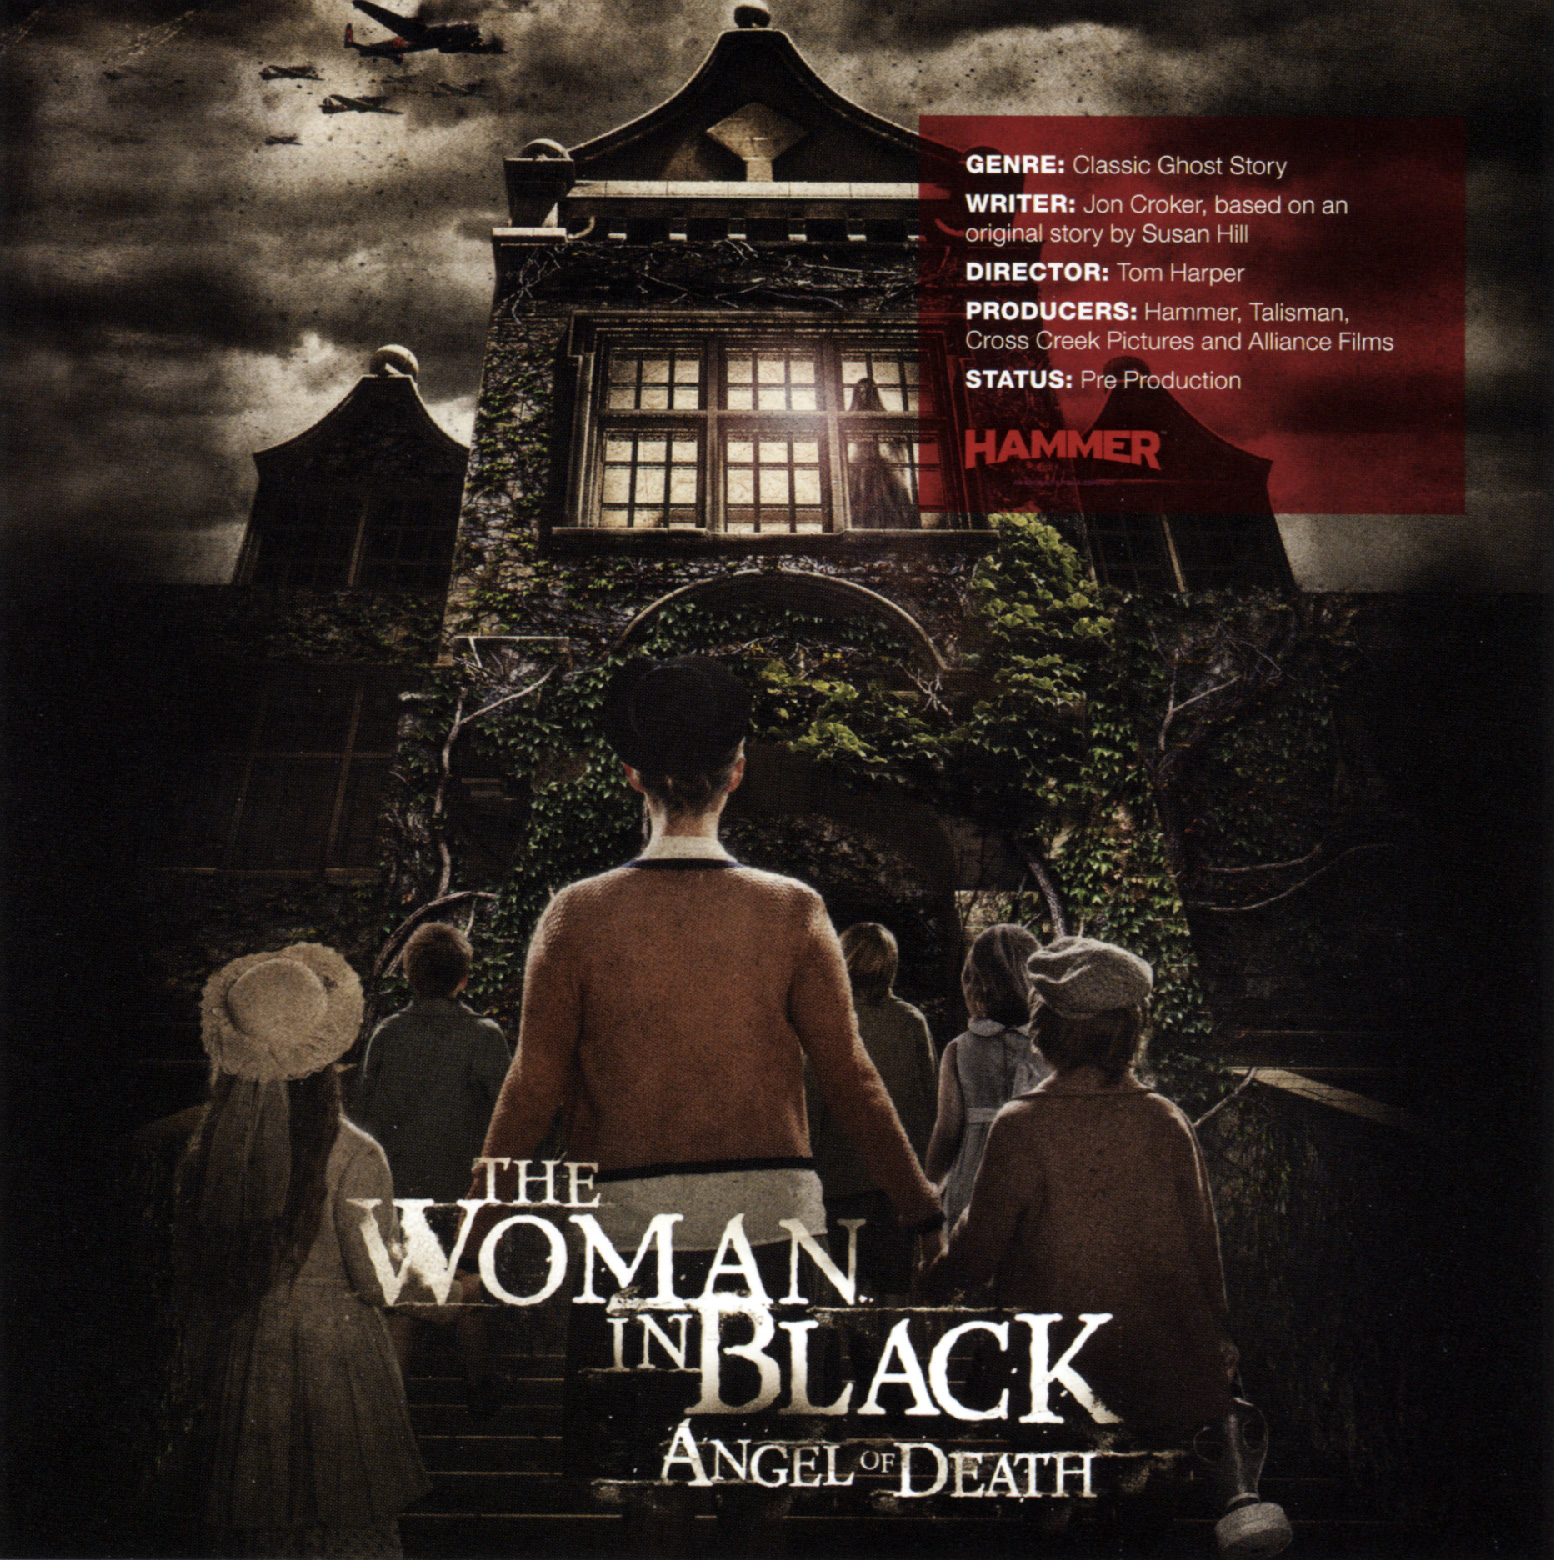 The woman in black 2 full movie in hindi dubbed watch online